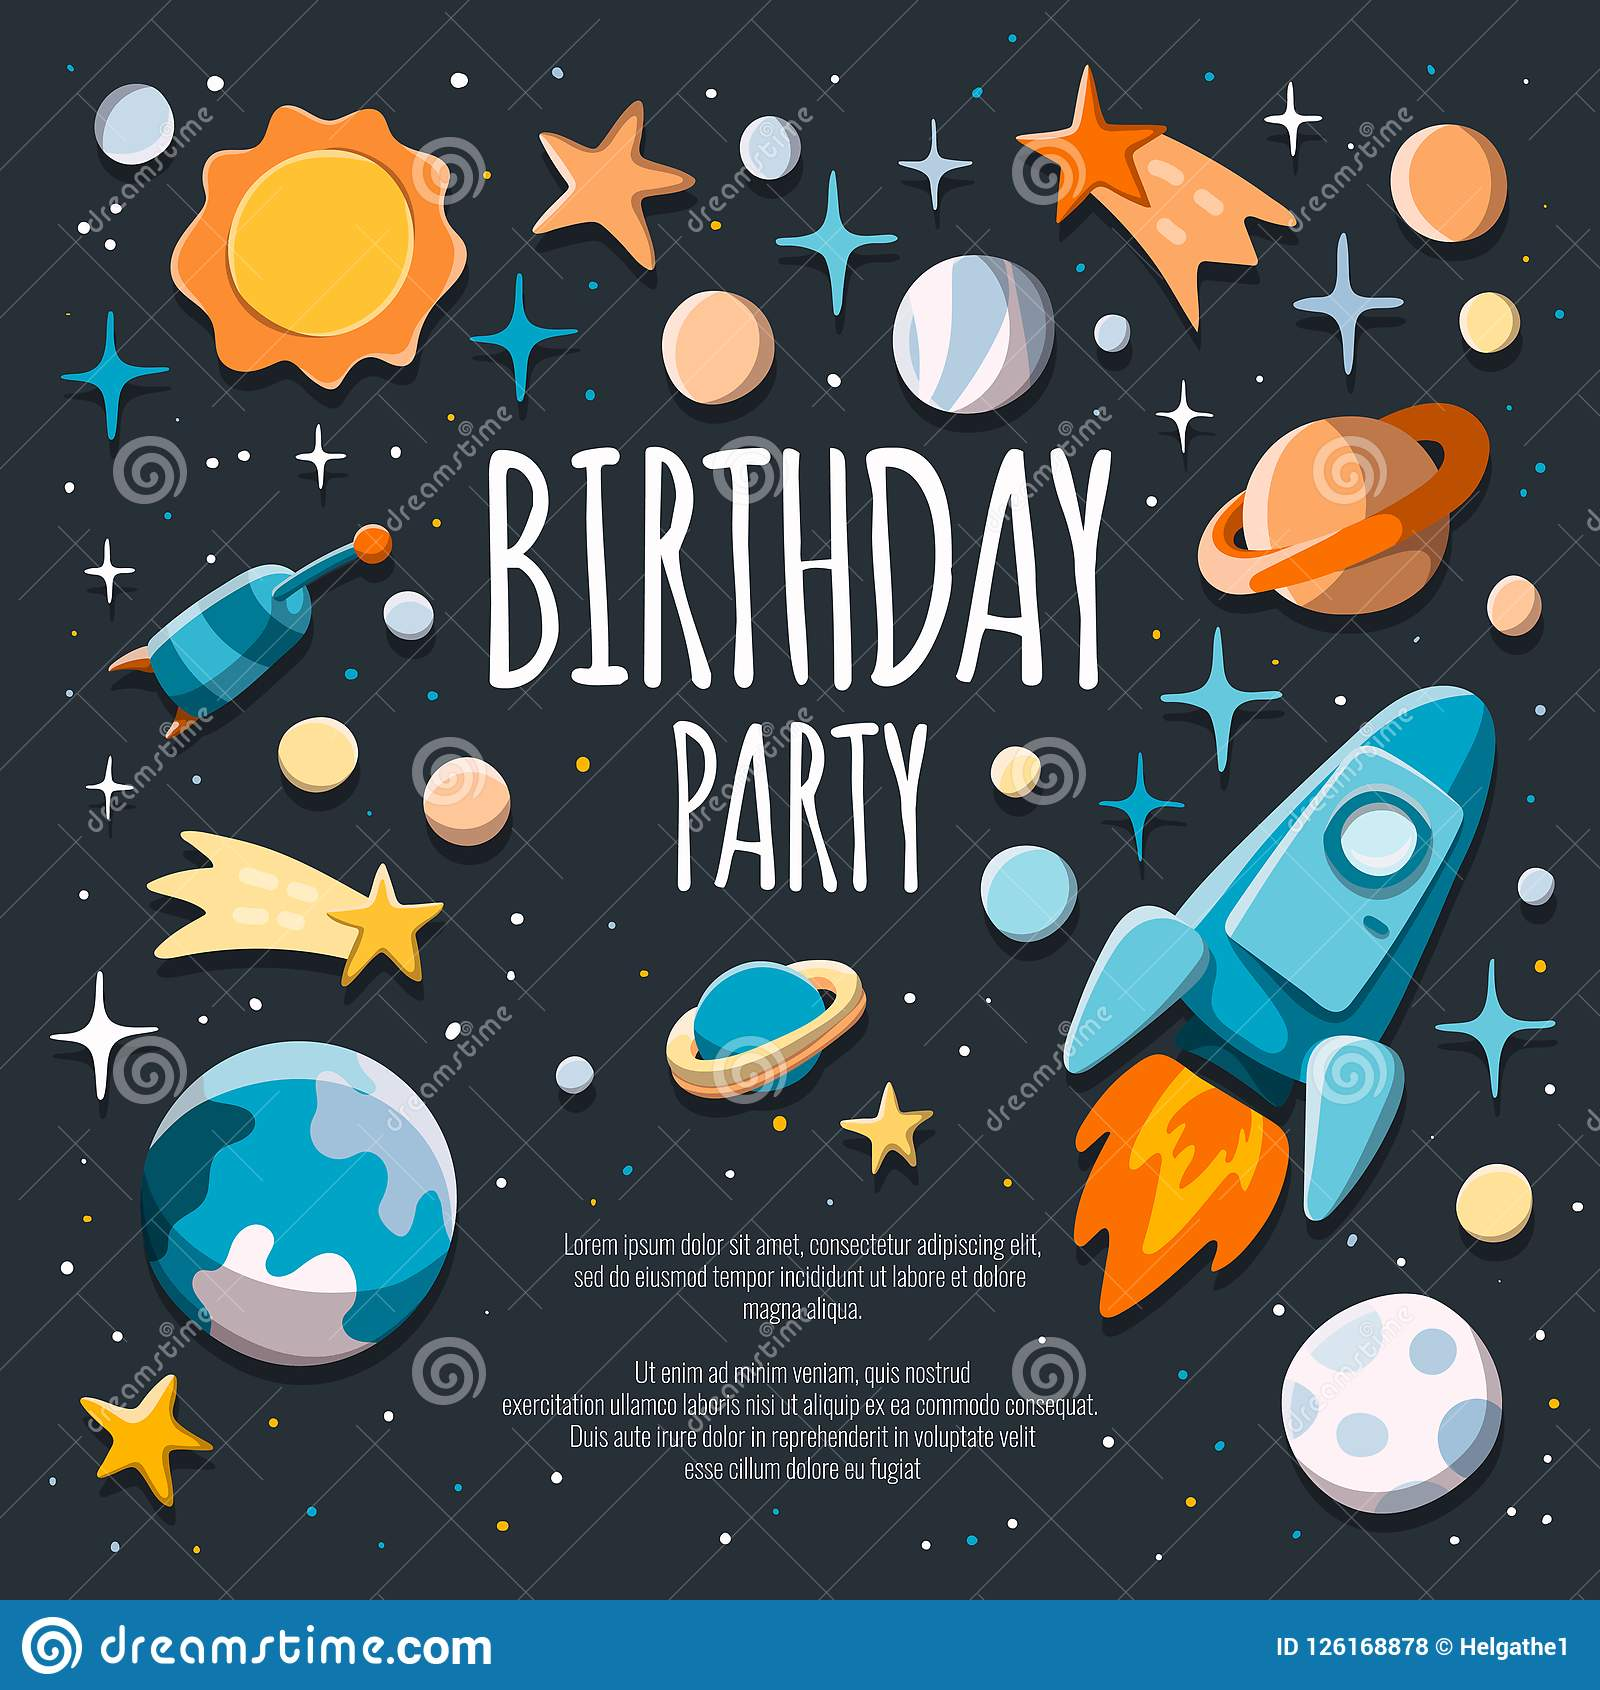 https www dreamstime com birthday party invitation flyer poster template background rocket planets starry background birthday party invitation image126168878